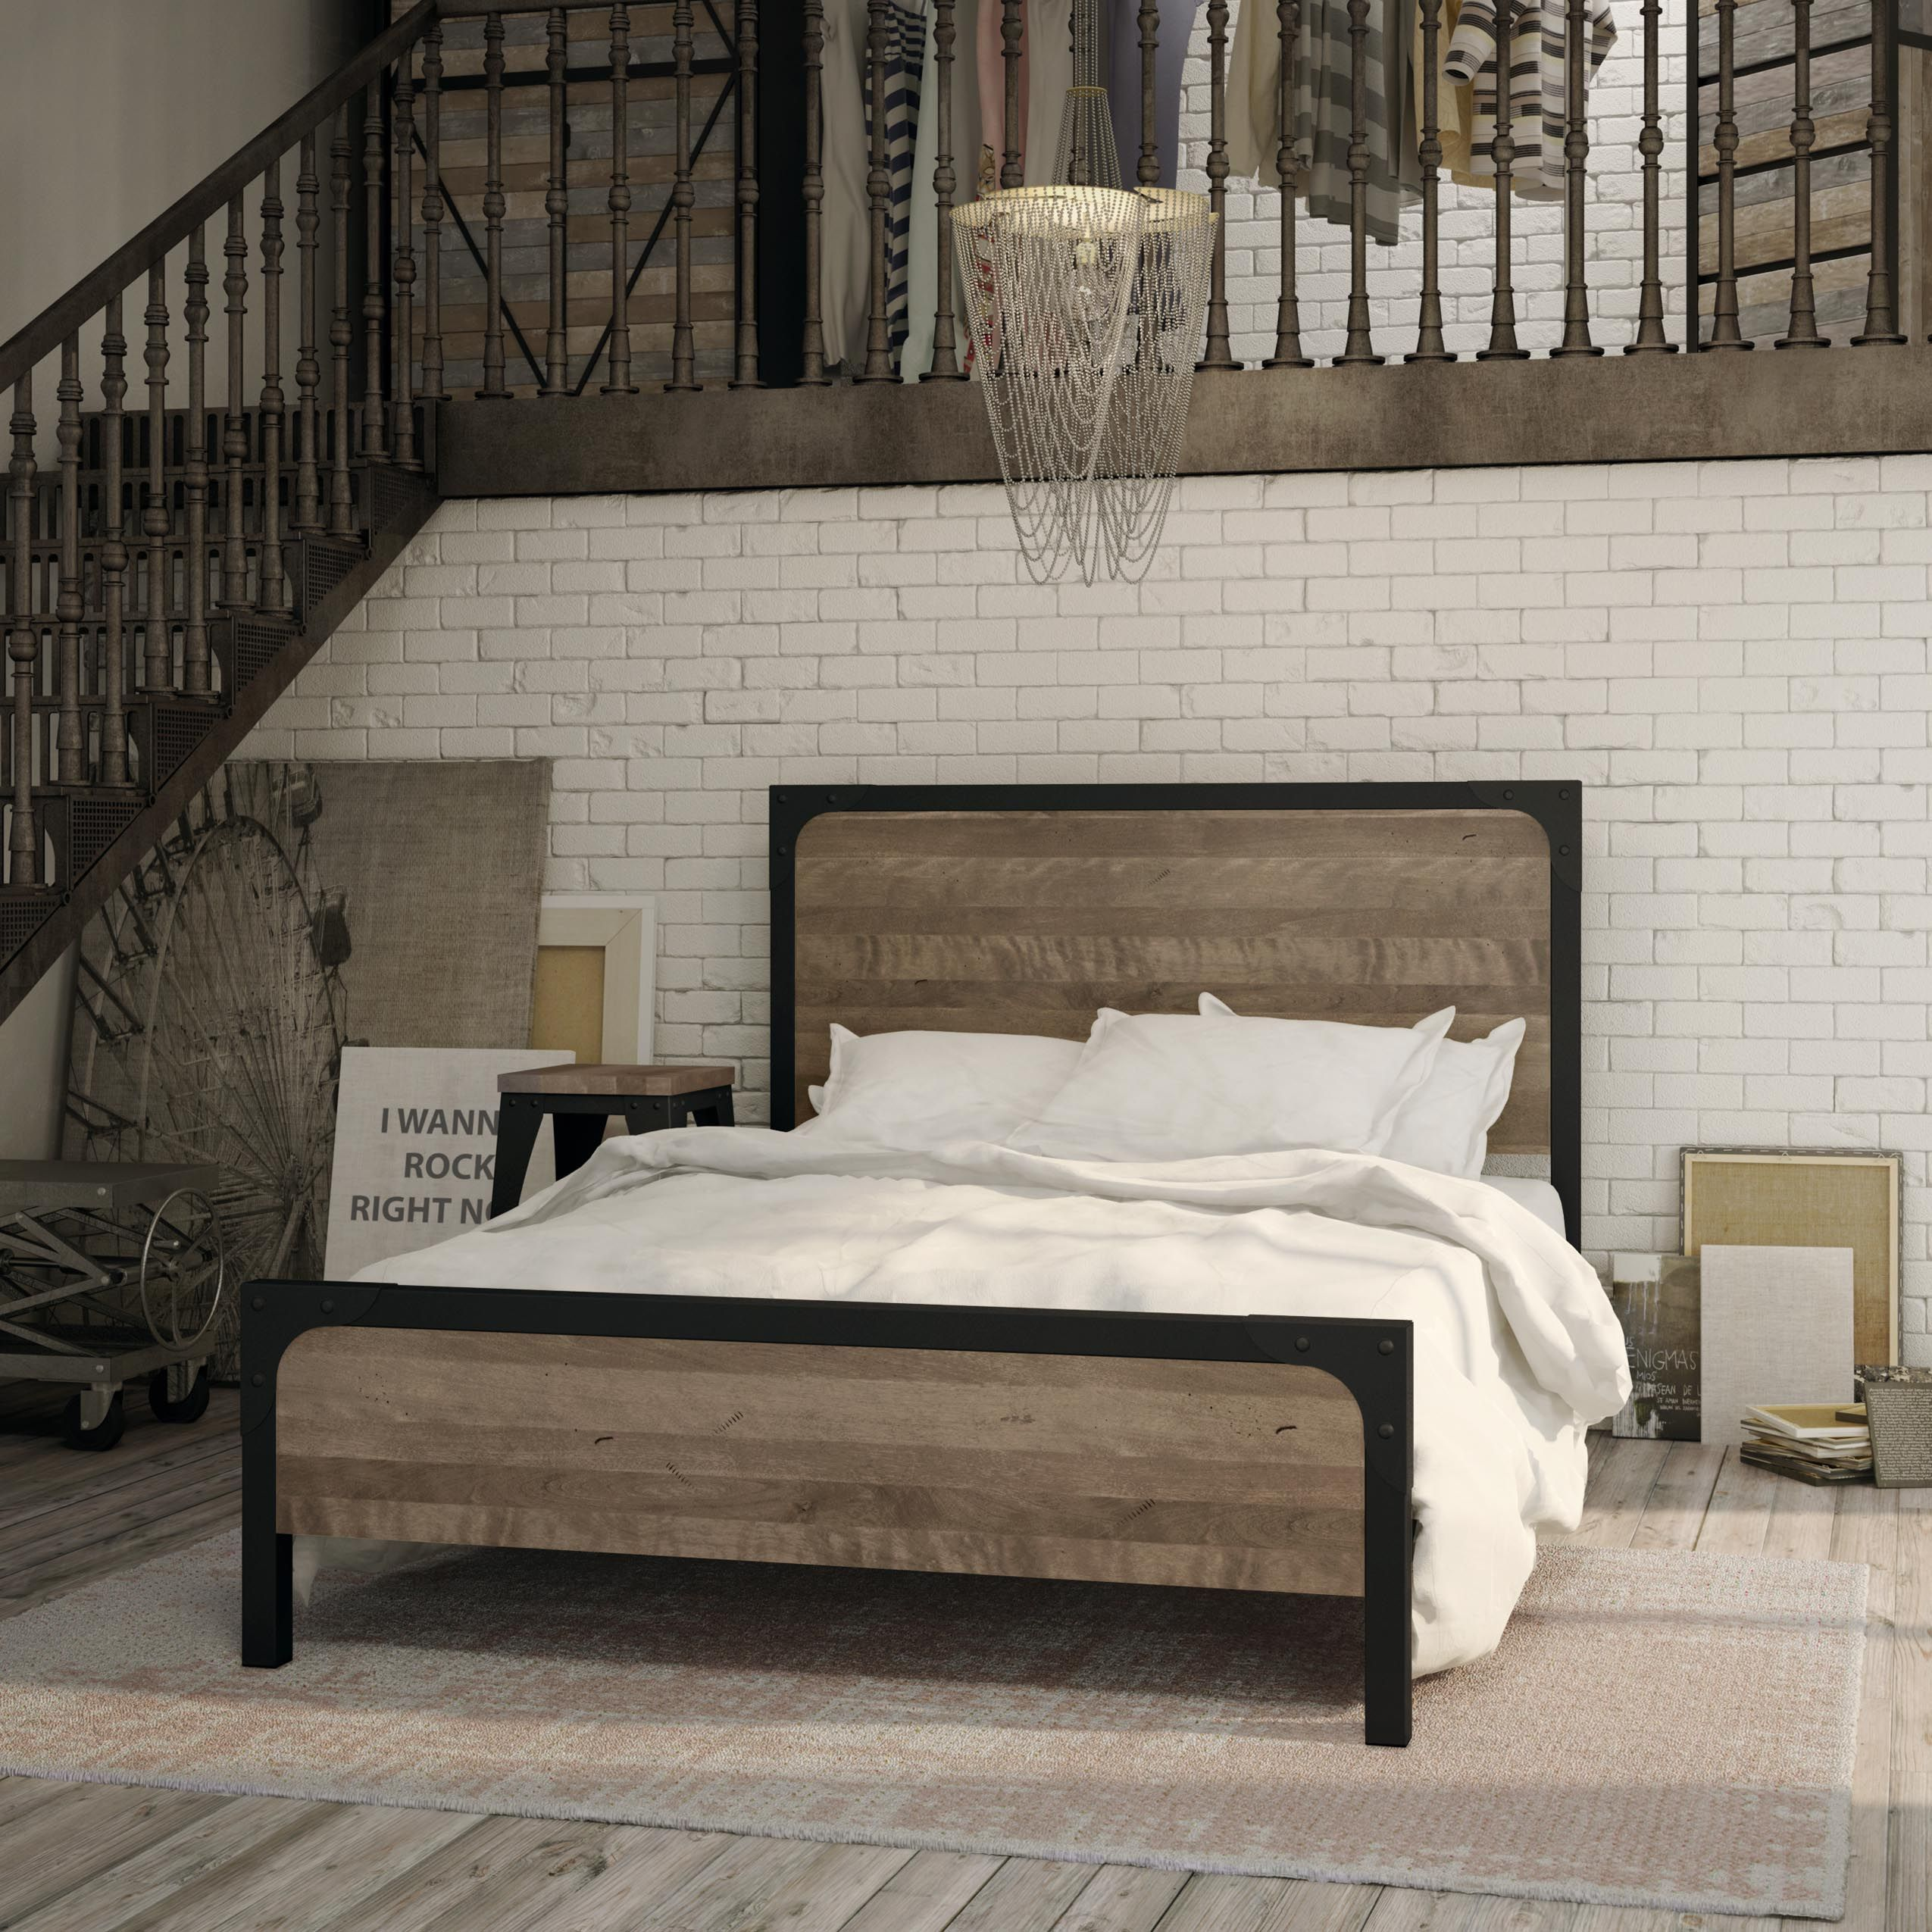 Amisco Cordoba Bed 12397 Furniture Bedroom Industrial Collection Contempor Apartment Bedroom Decor Bedroom Decor Inspiration King Bedroom Furniture